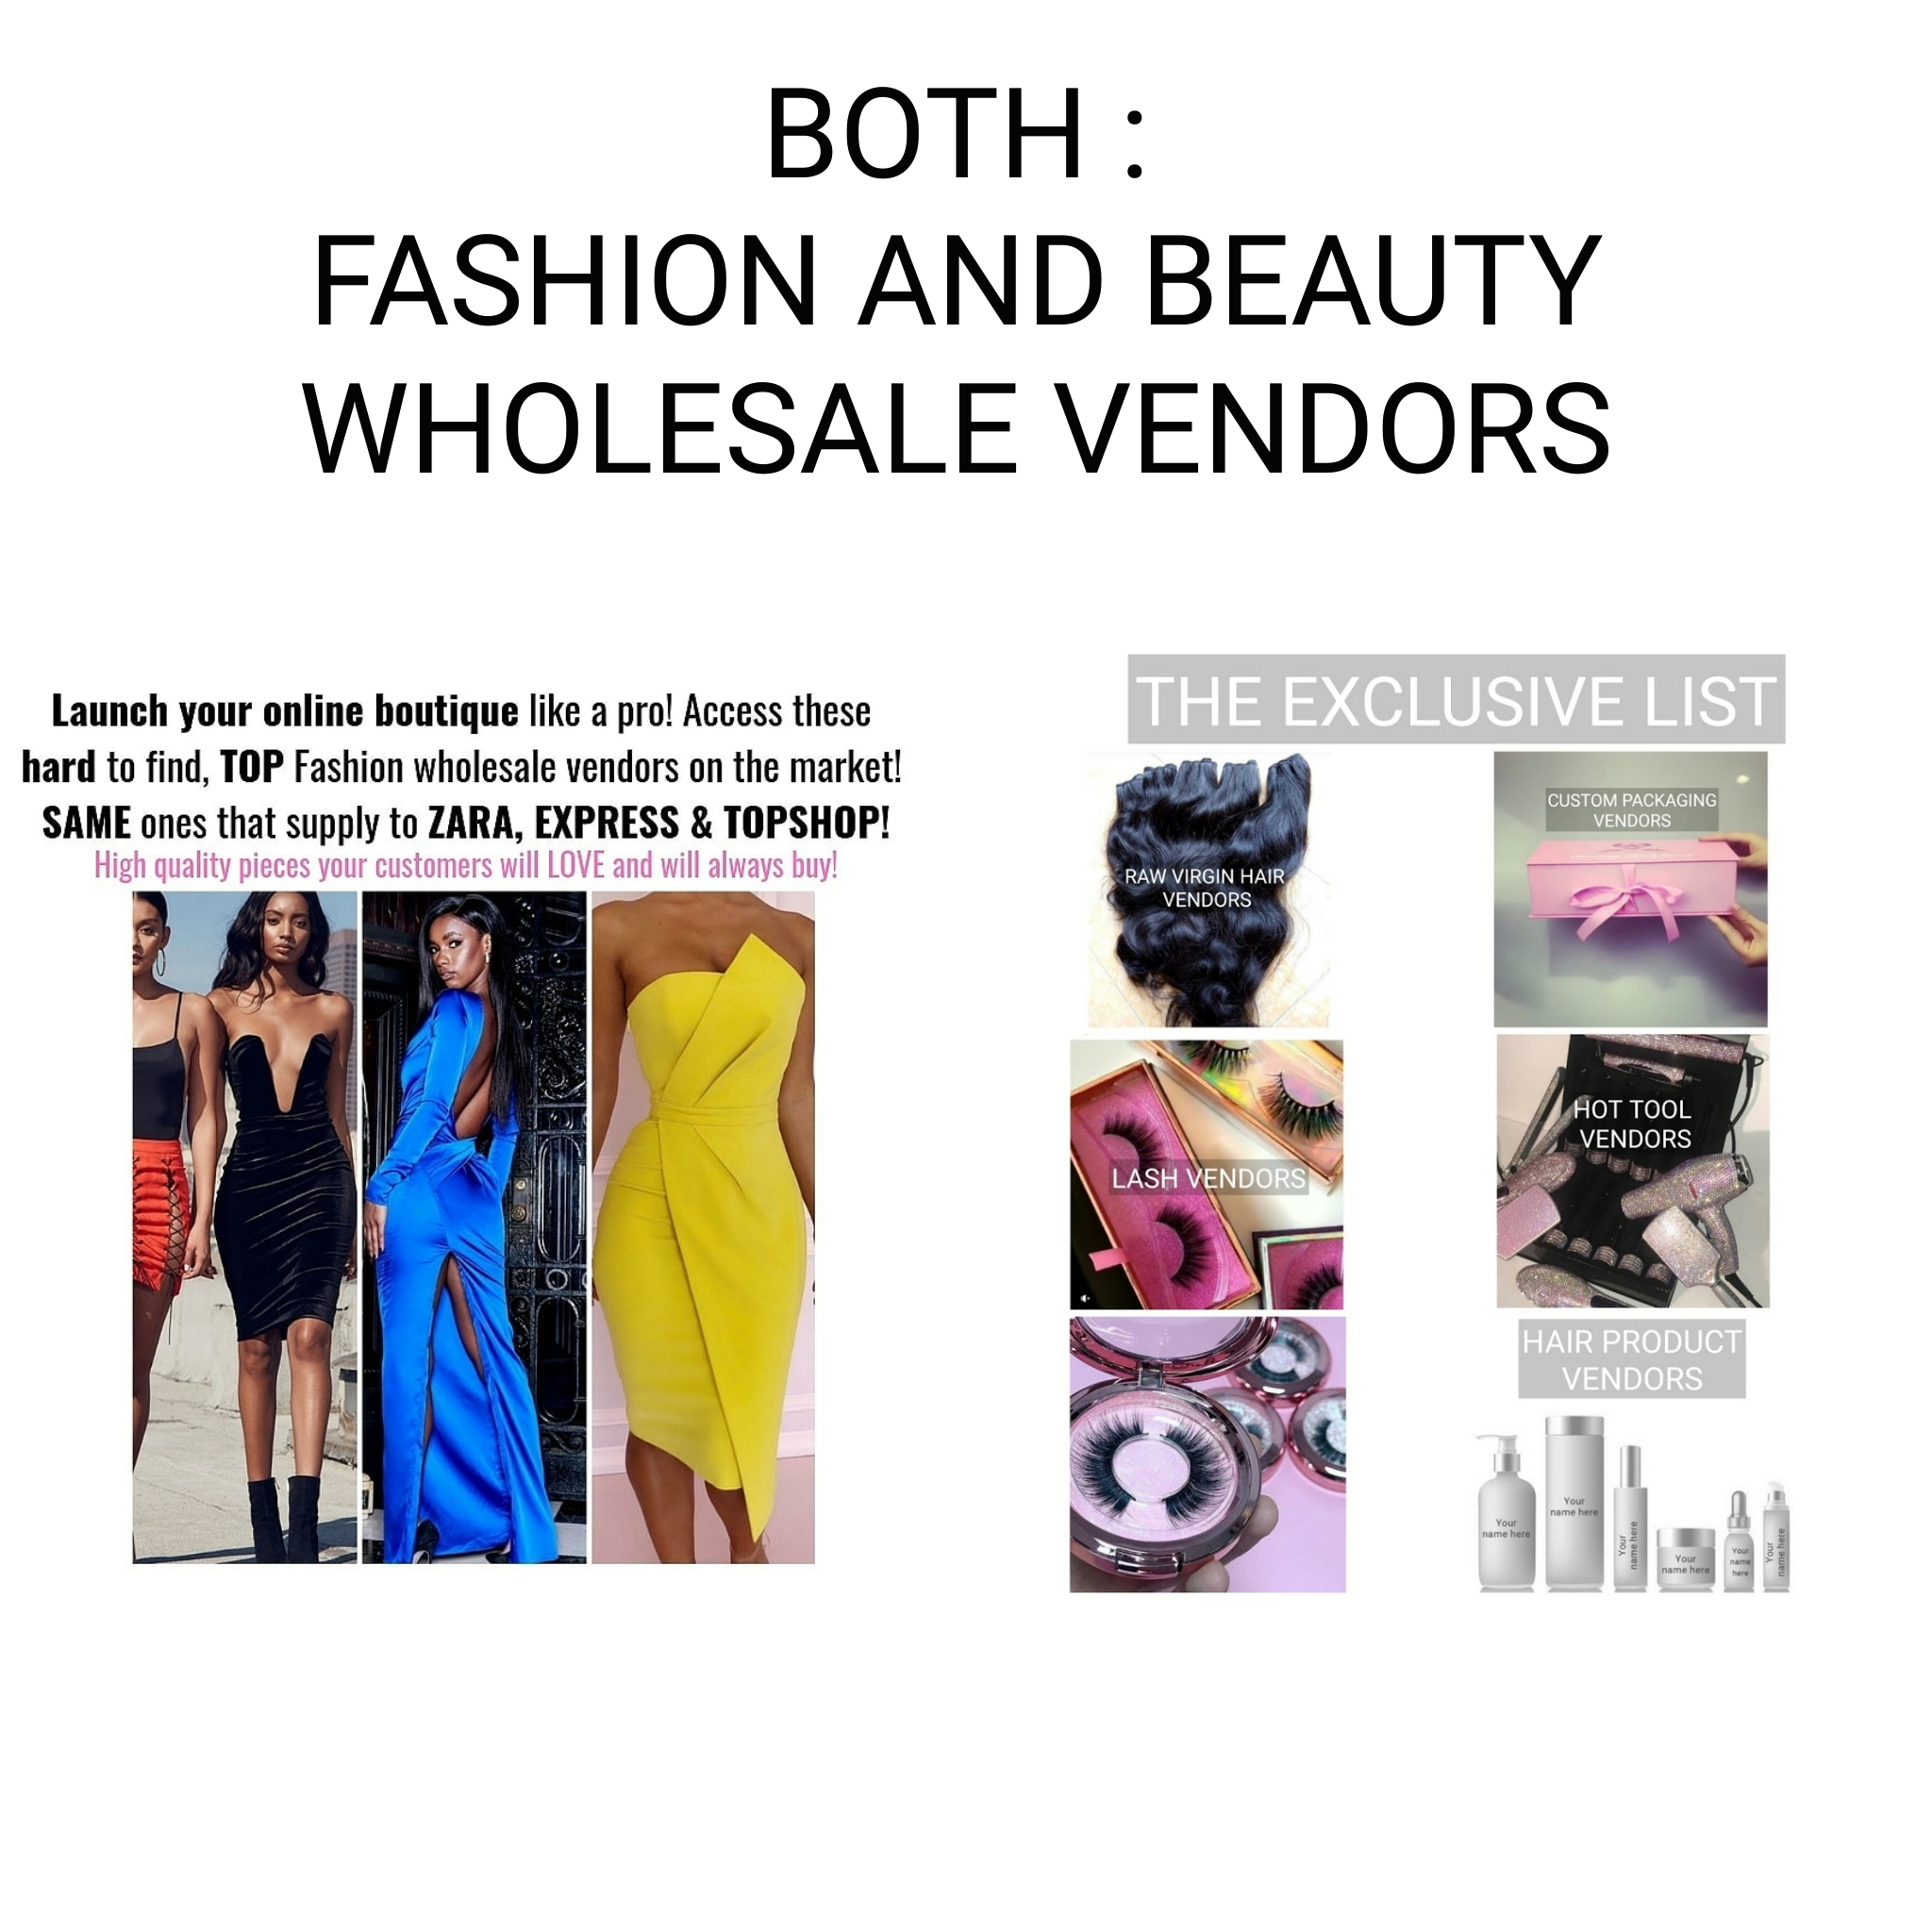 Wholesale Beauty Vendors Both Lists Fashion And Hair Beauty